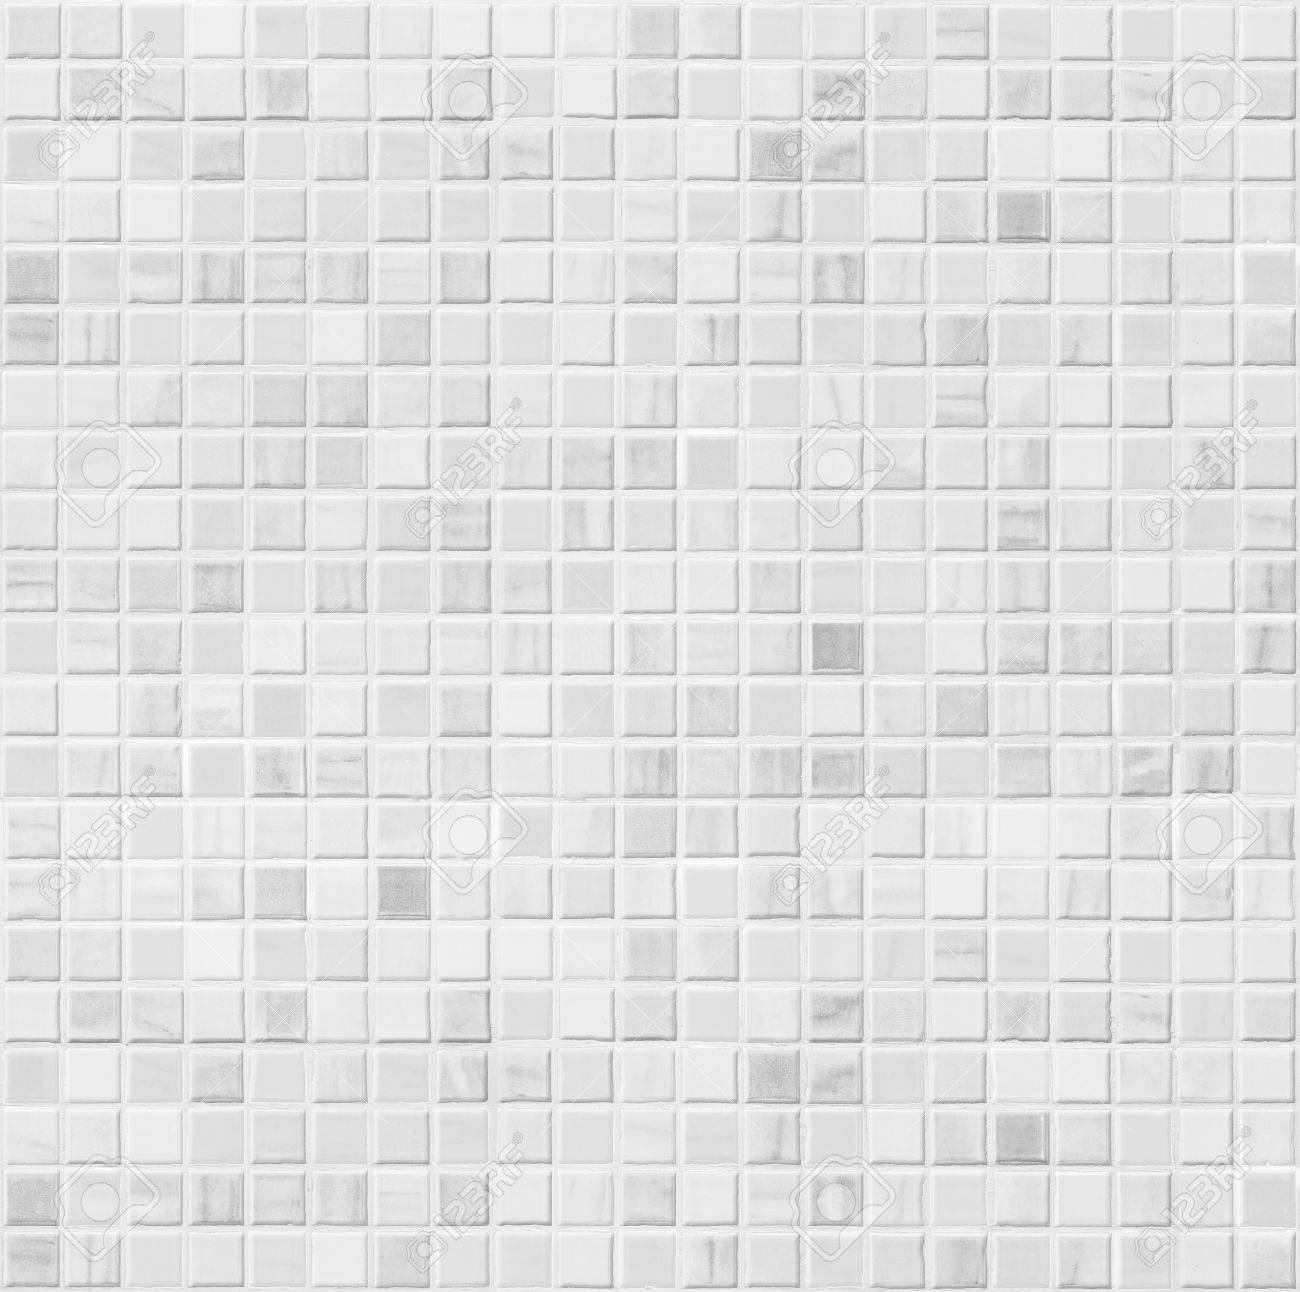 White Ceramic Bathroom Wall Tile Seamless Pattern For Background ...